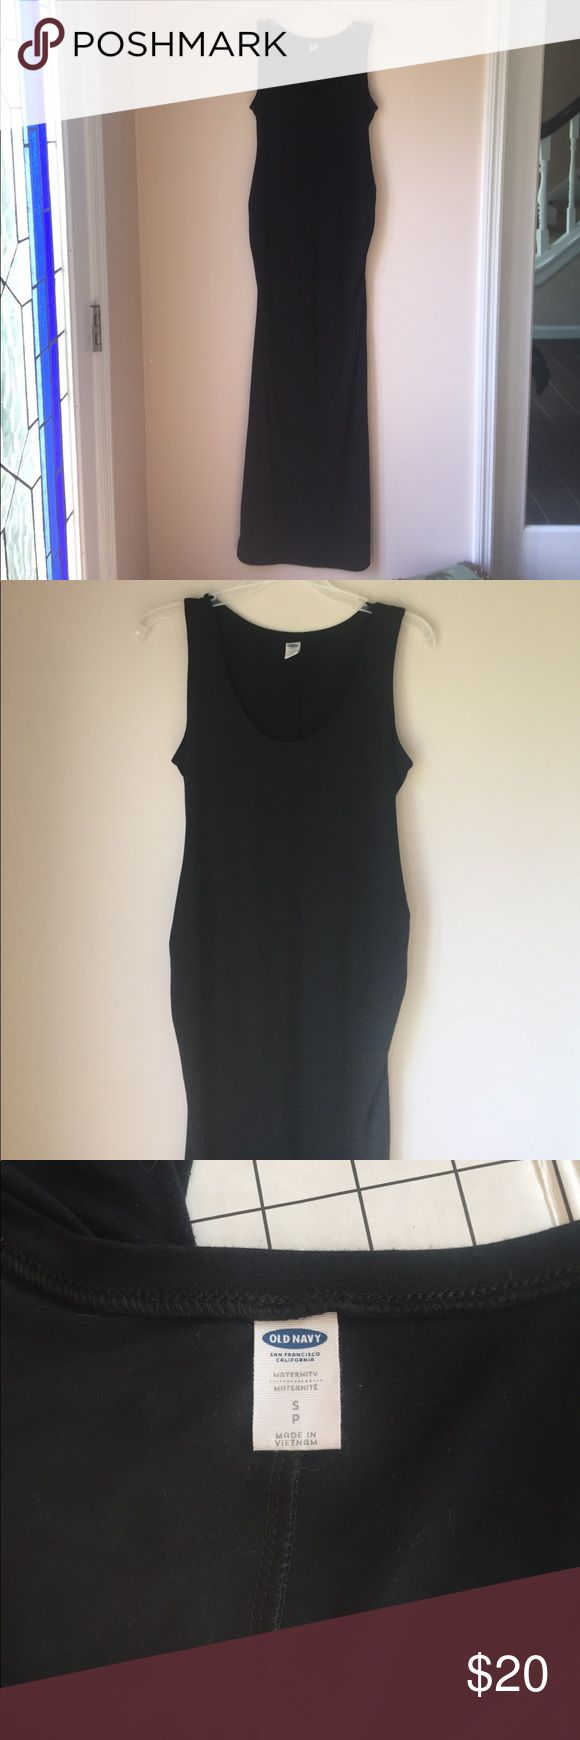 Old Navy Maternity Dress Super comfortable Maxi dress this was my favorite because I could wear it in summer and in winter with a cardigan.  It's still in EUC Old Navy Dresses Maxi